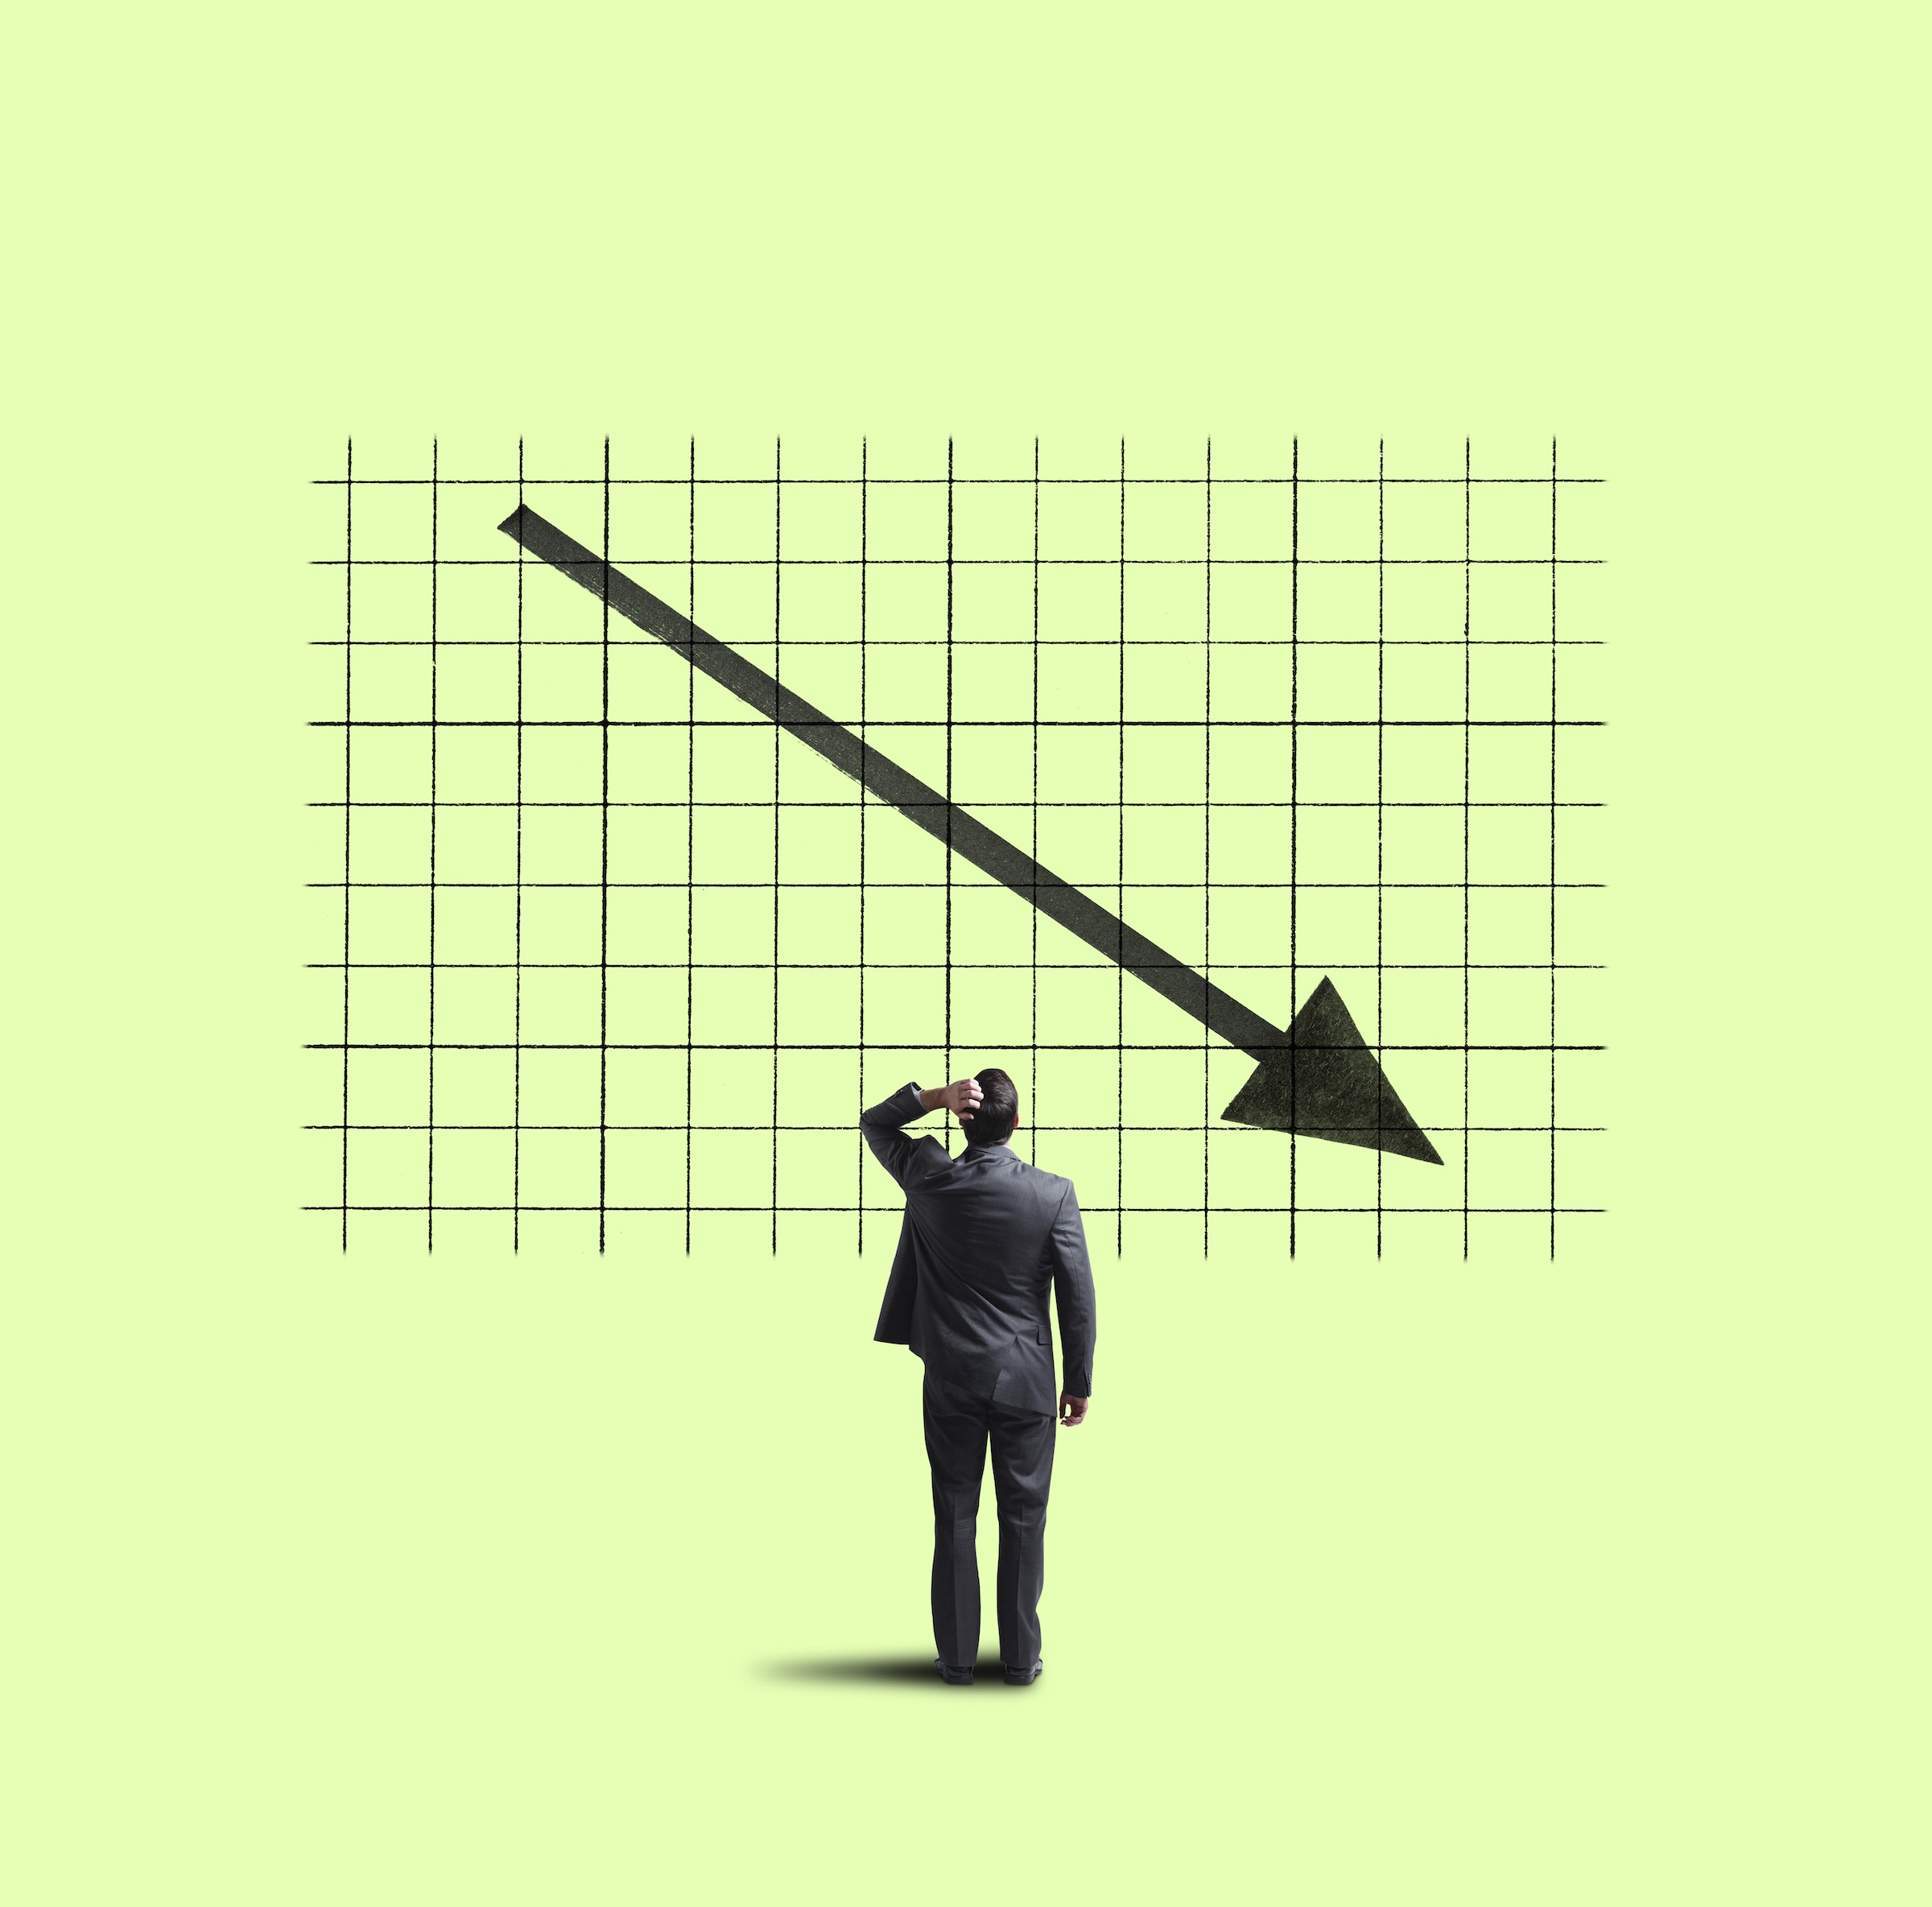 A businessman places his hand on his head as he looks up at a large chart that shows a declining sales or performance trend.